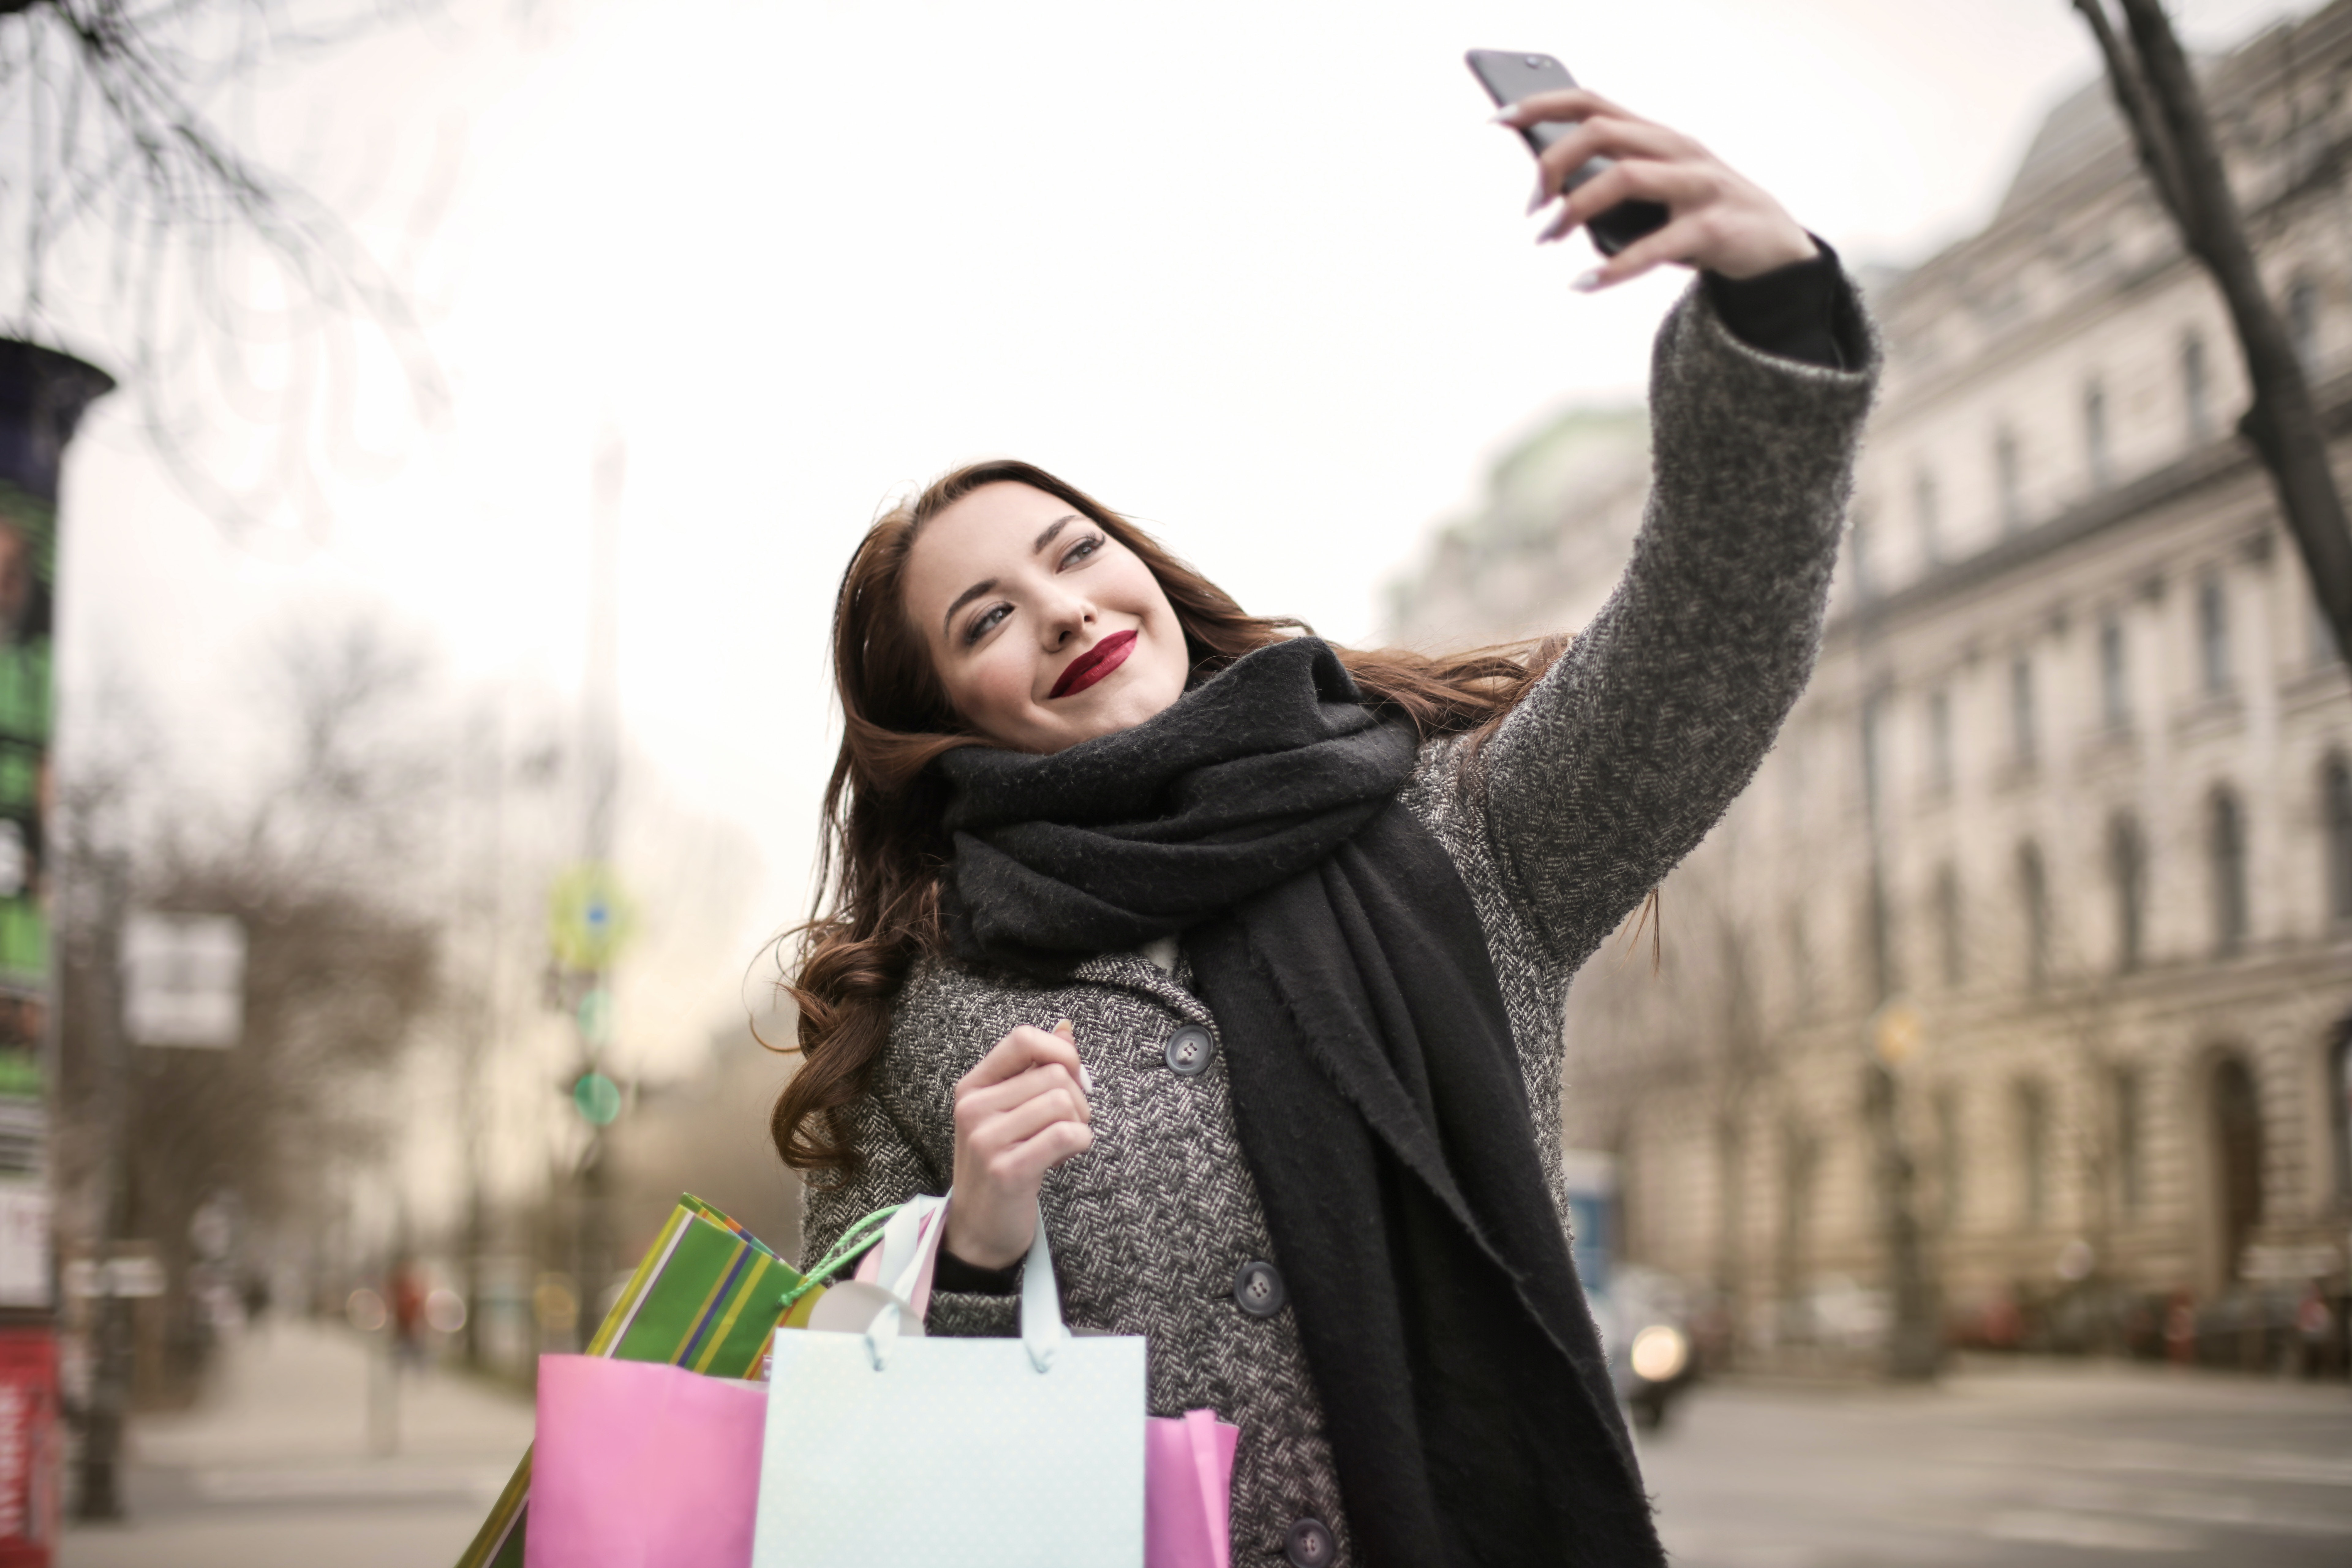 Millennial white woman taking a selfie while carrying expensive shopping bags